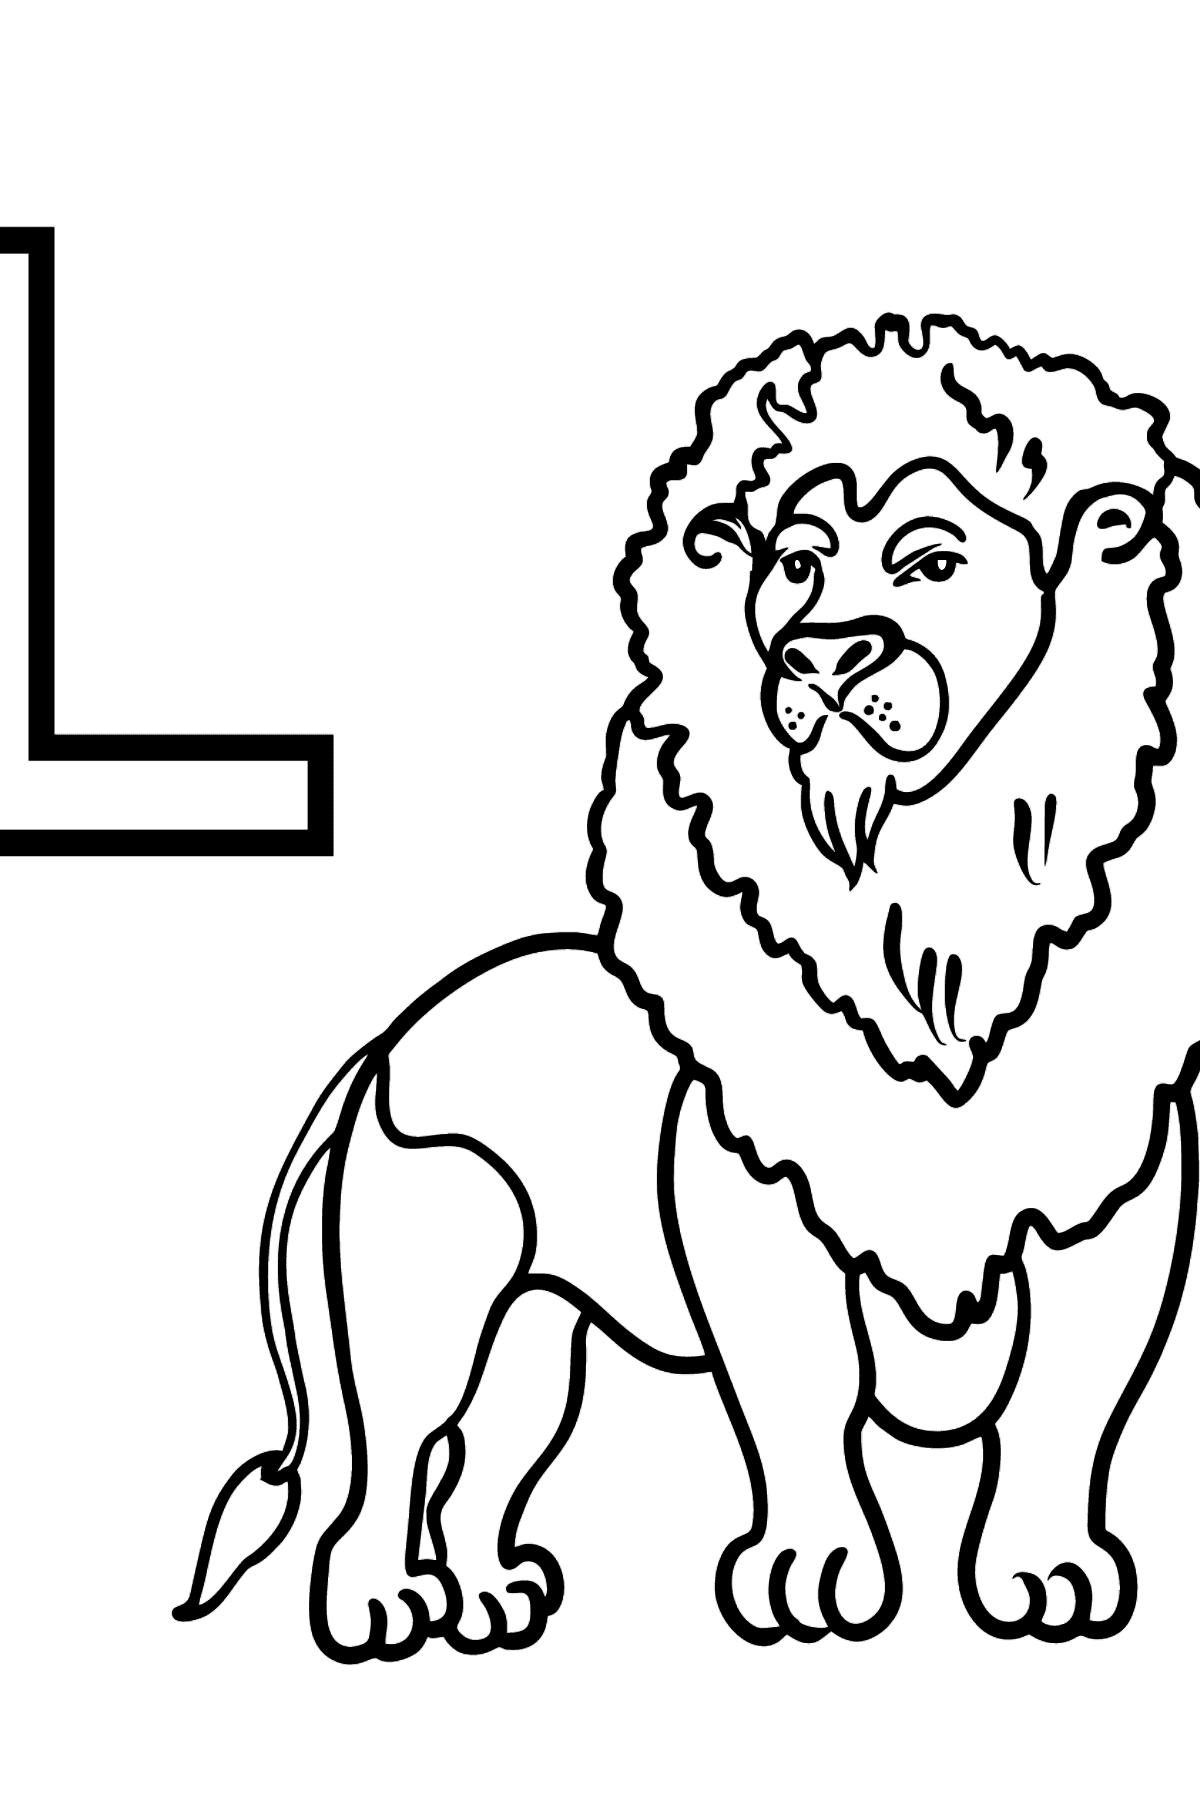 German Letter L coloring pages - LÖWE - Coloring Pages for Kids